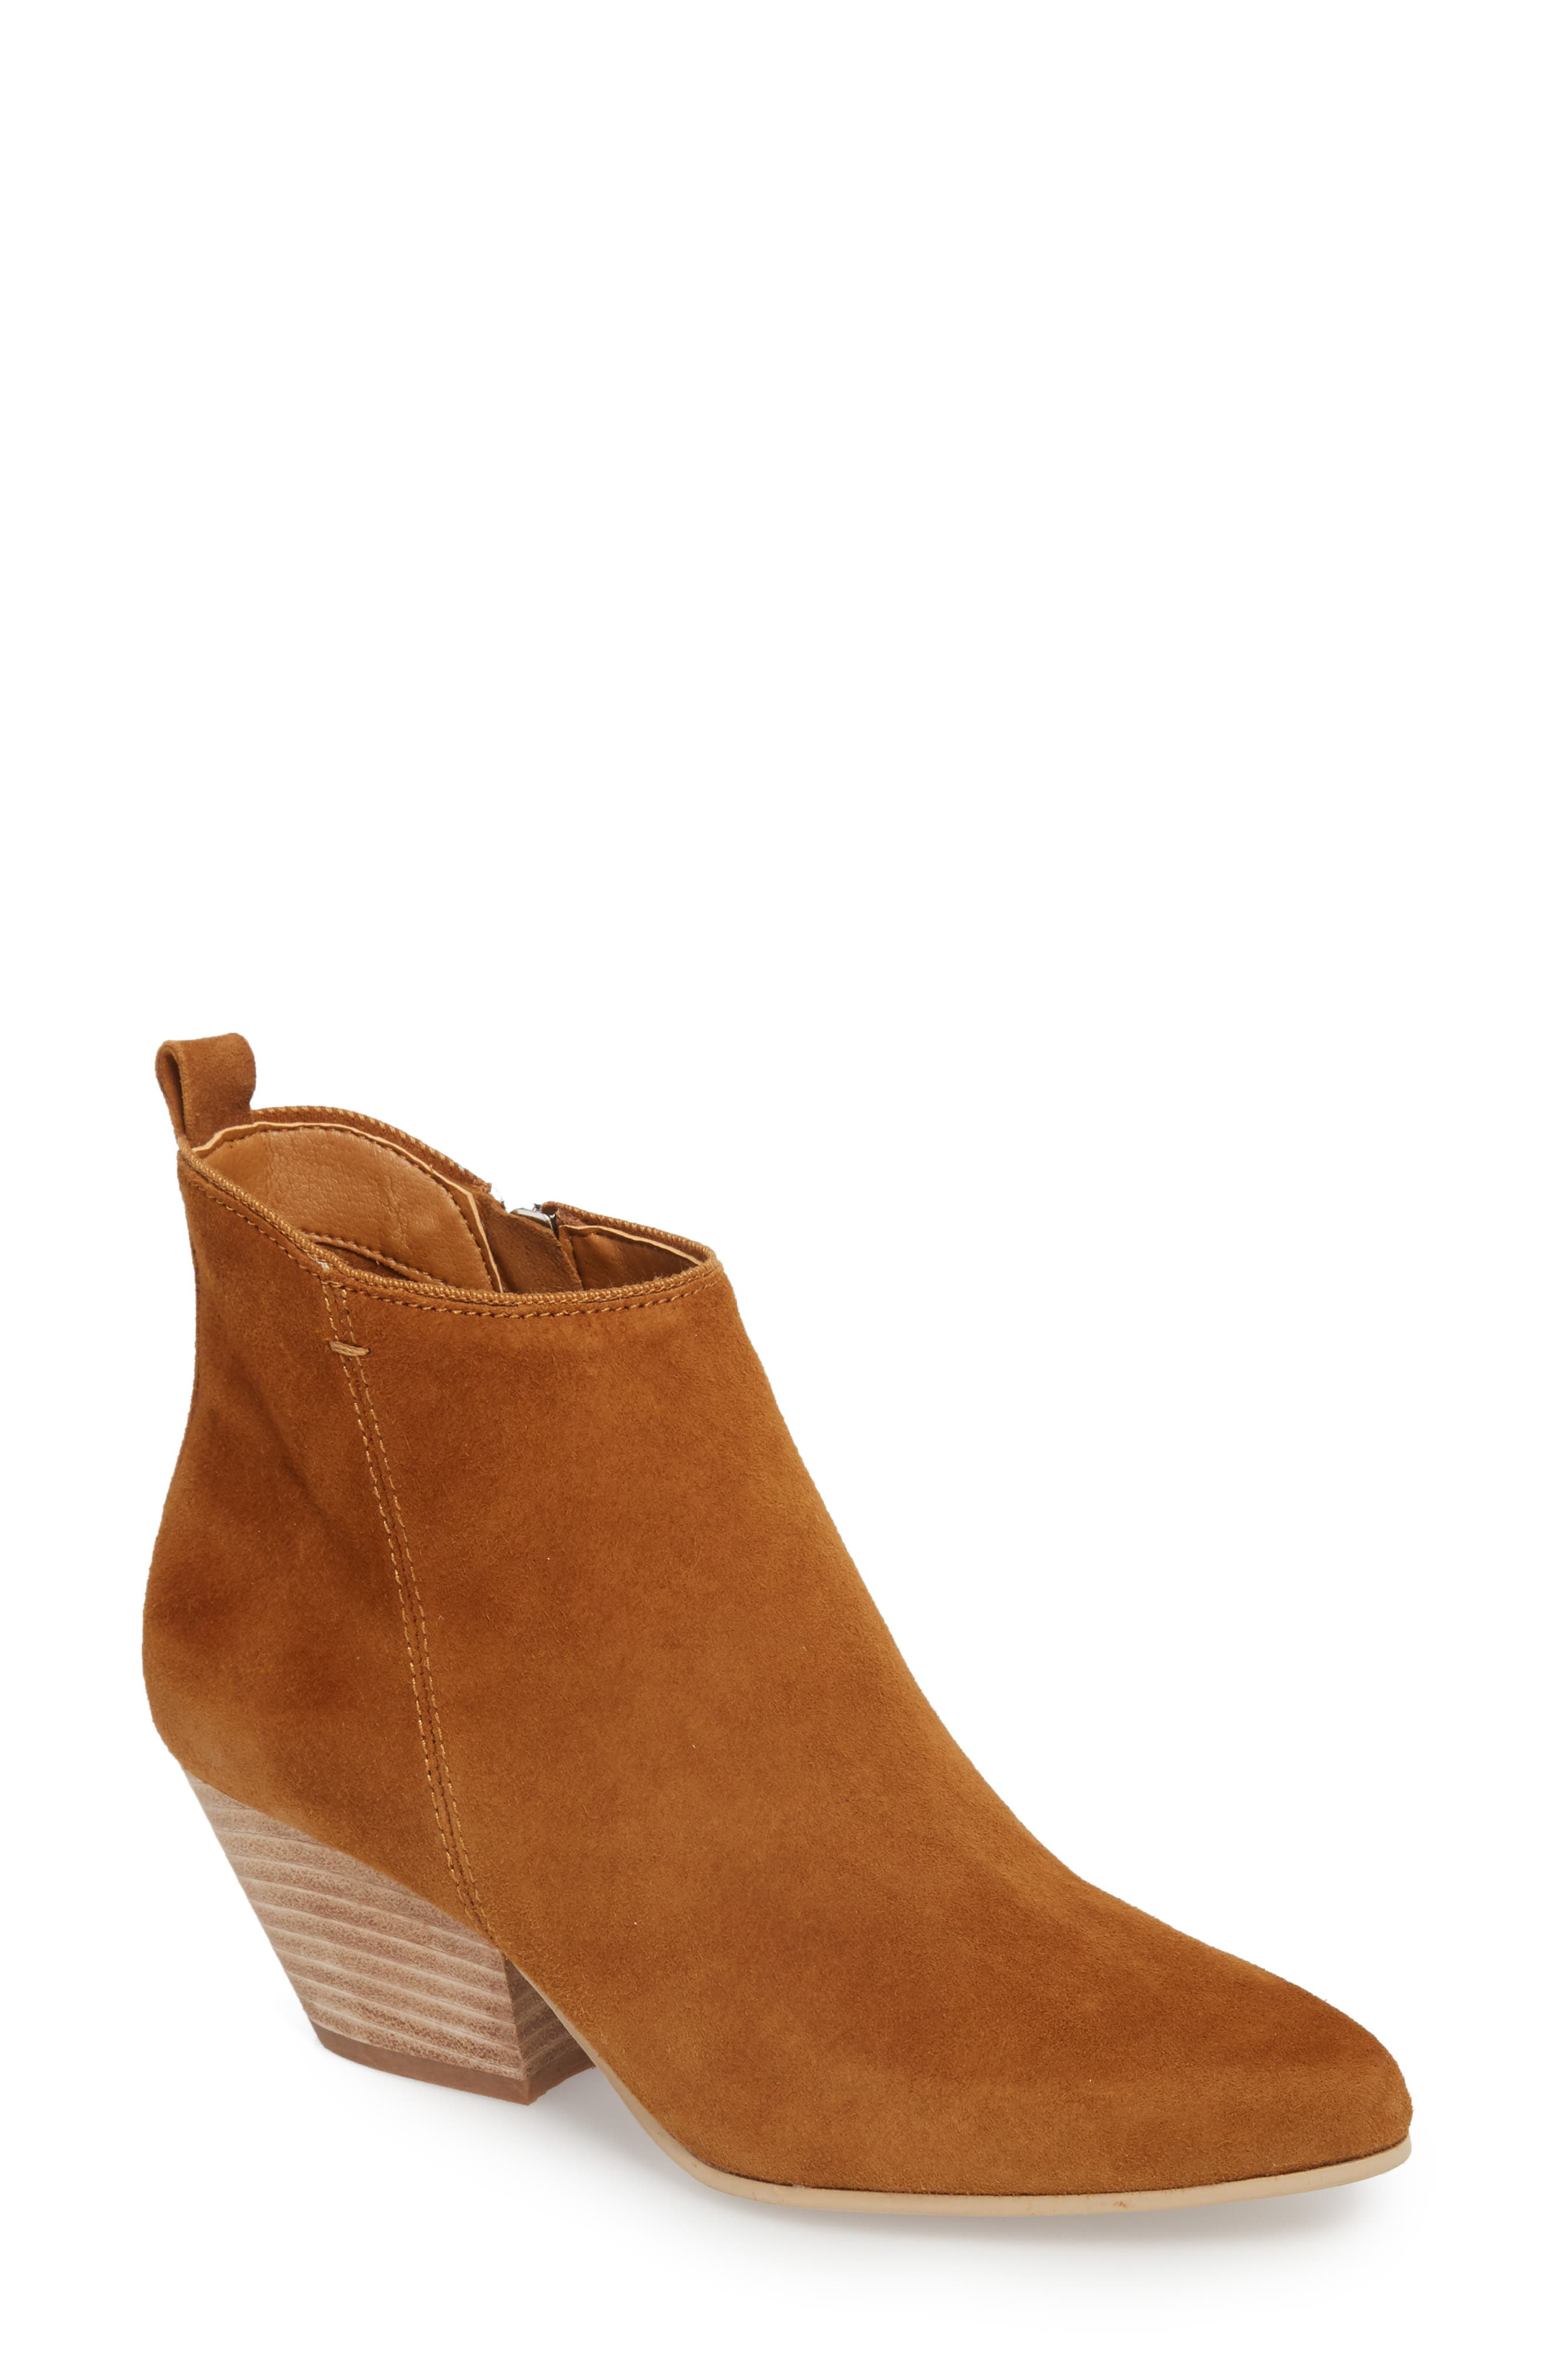 Dolce Vita Pearse Bootie, Brown